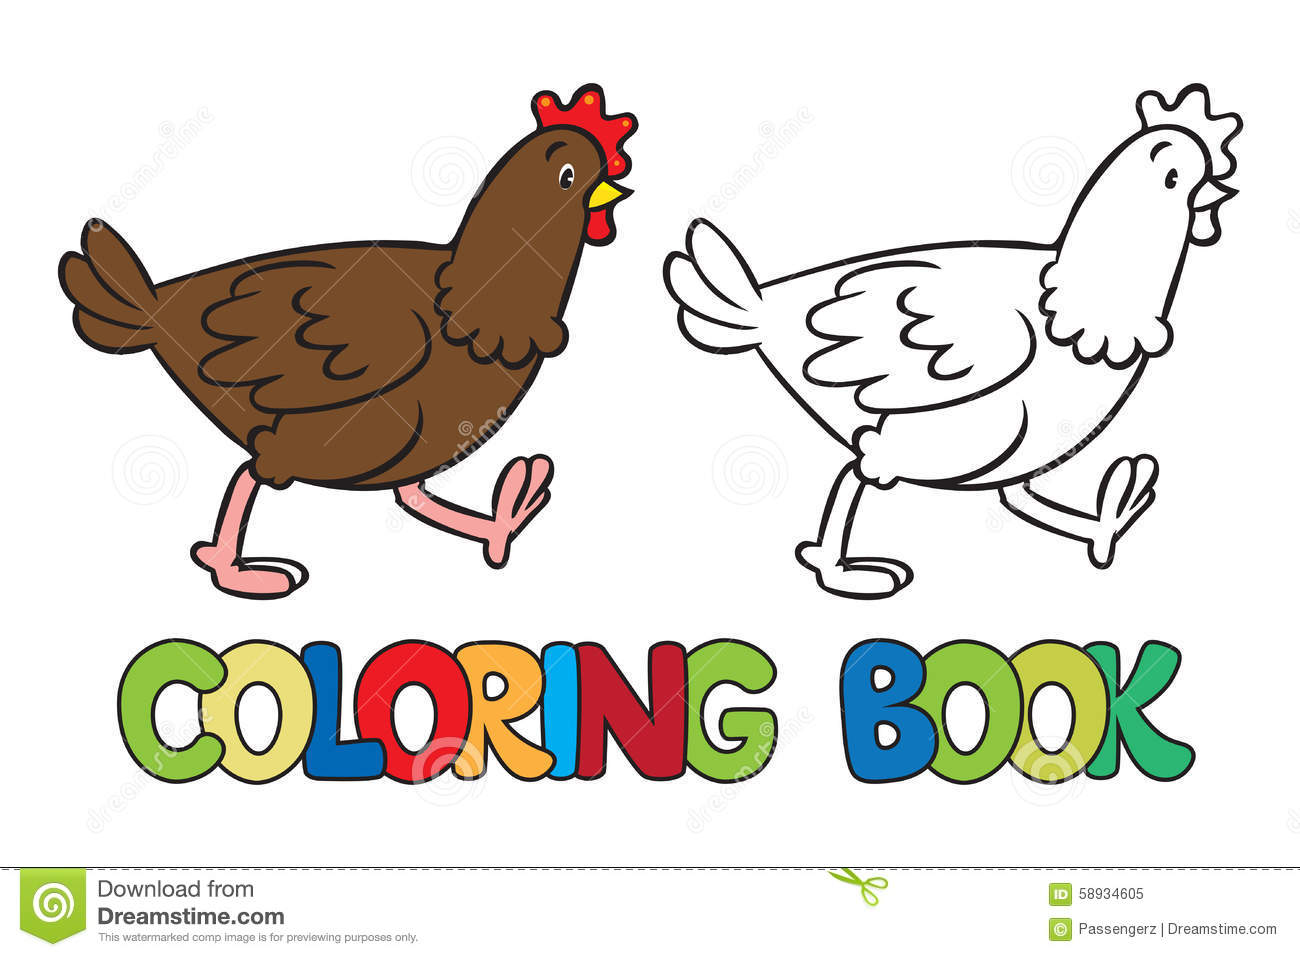 Funny Chicken Coloring Book Stock Vector - Illustration of cute ...